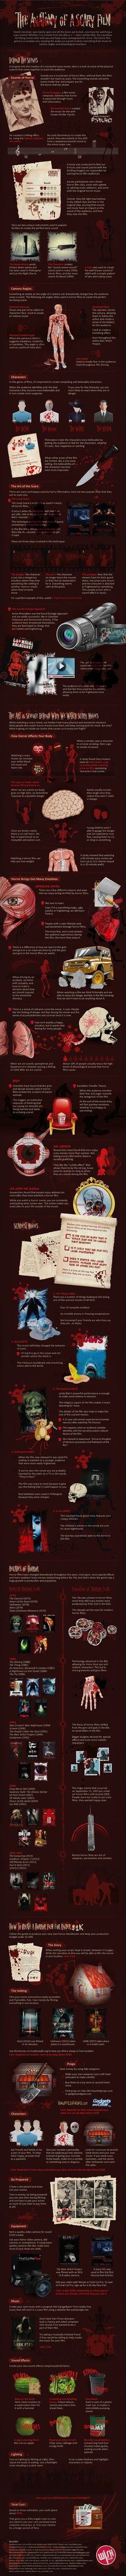 The Anatomy of a Scary Film: An Infographic |